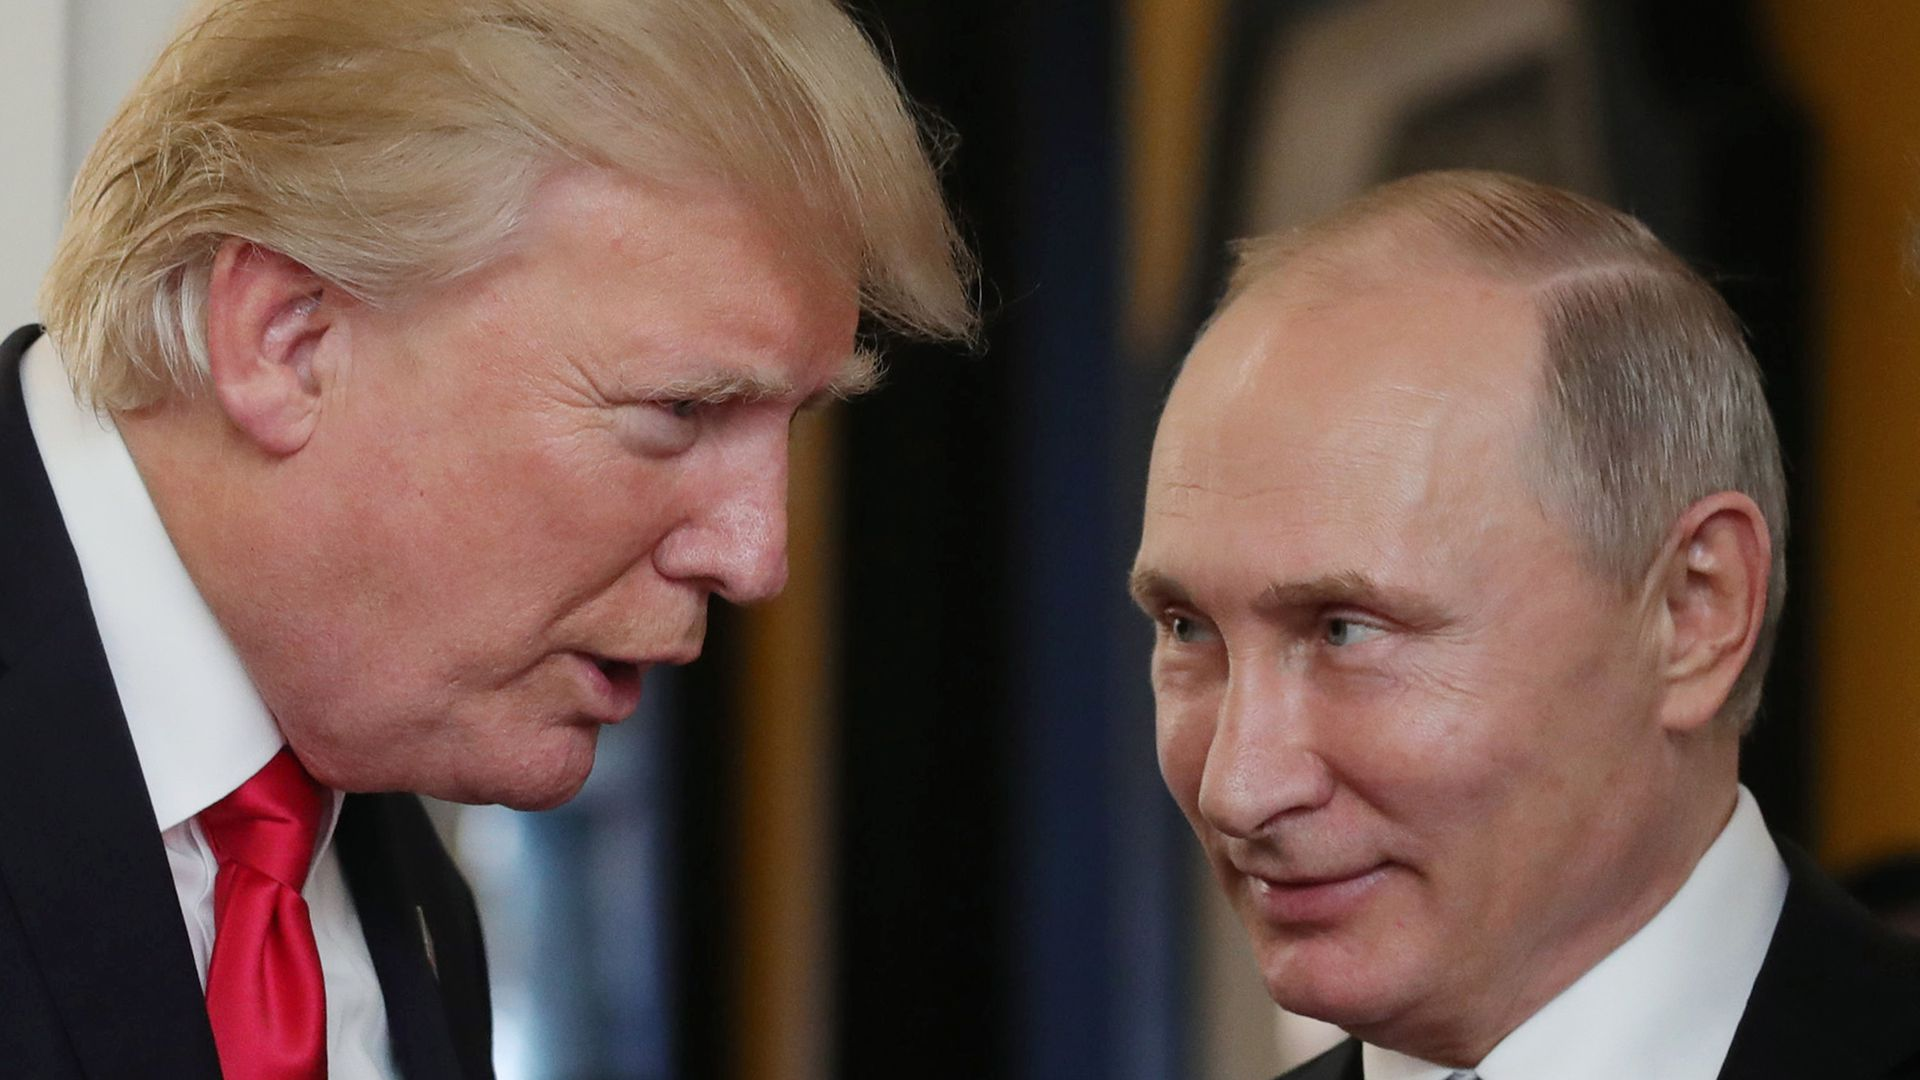 Donald Trump and Vladimir Putin.